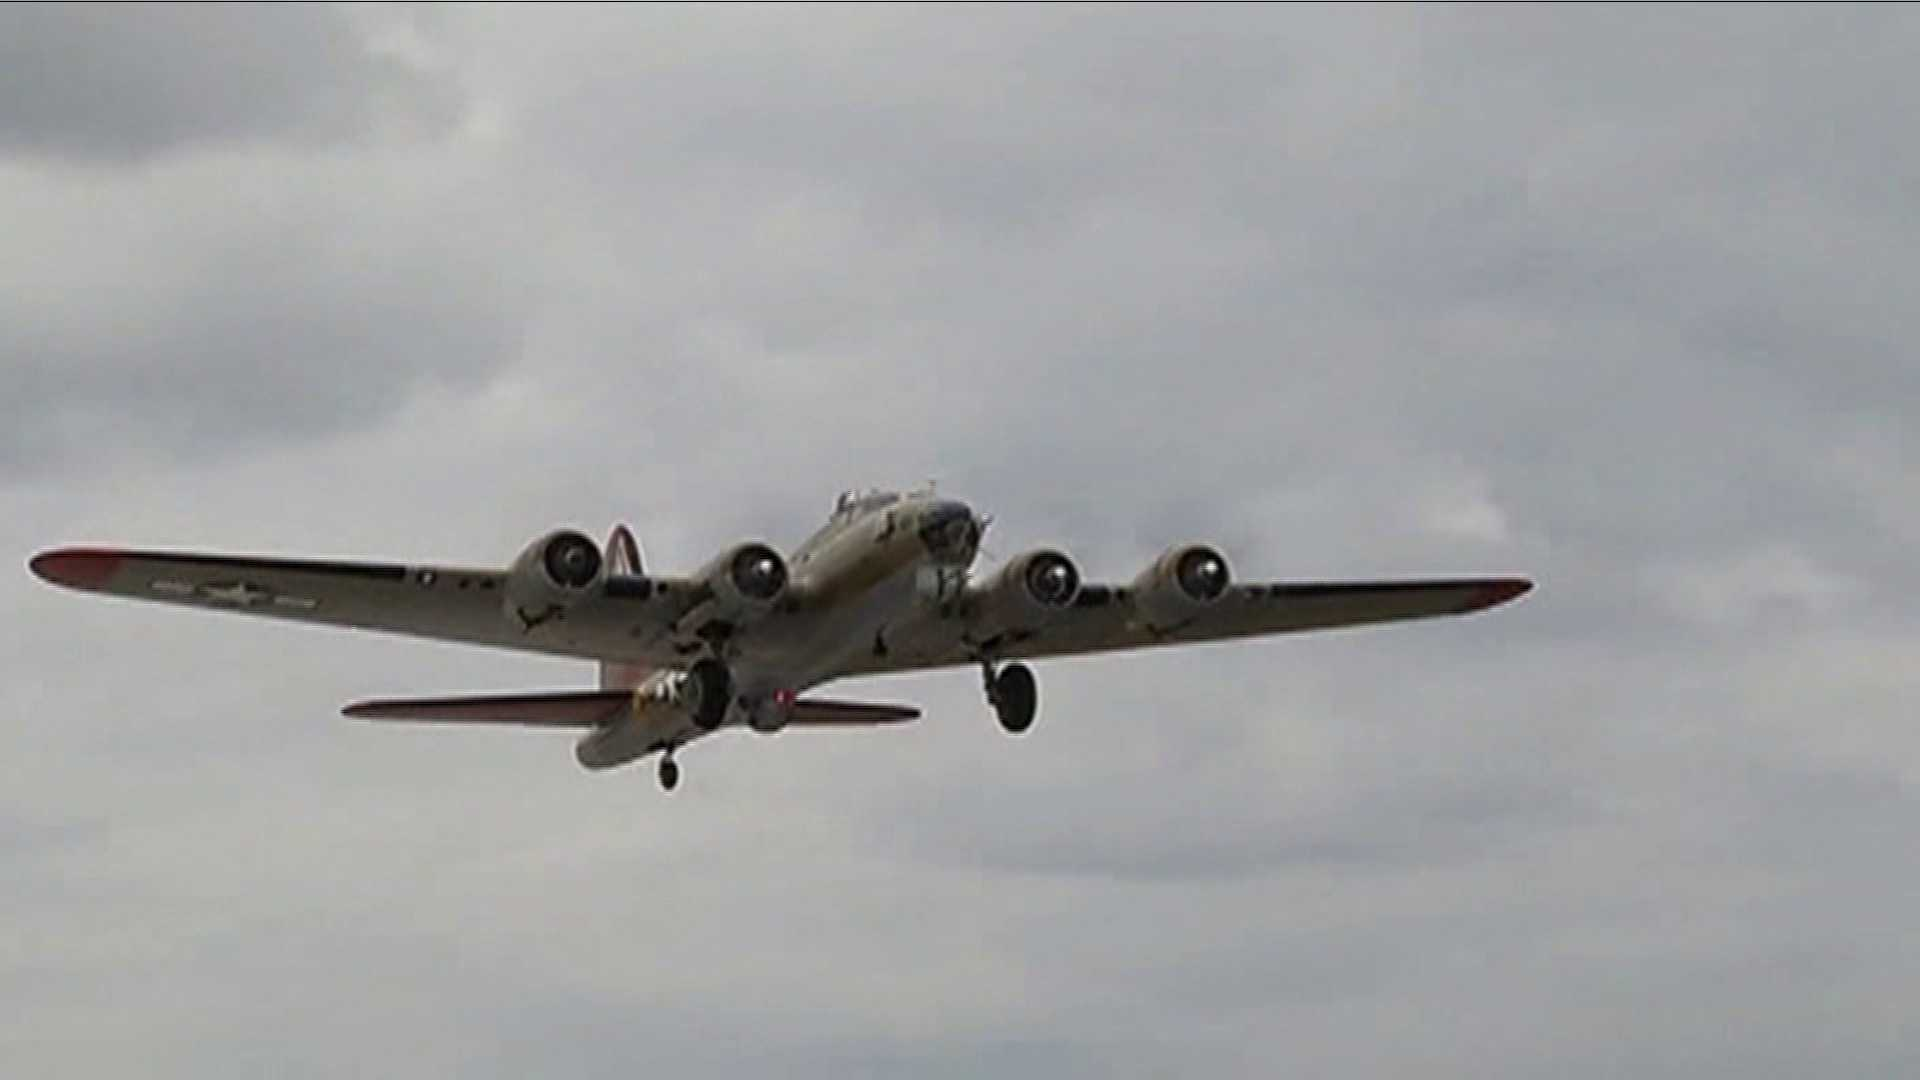 WWII plane from 2014